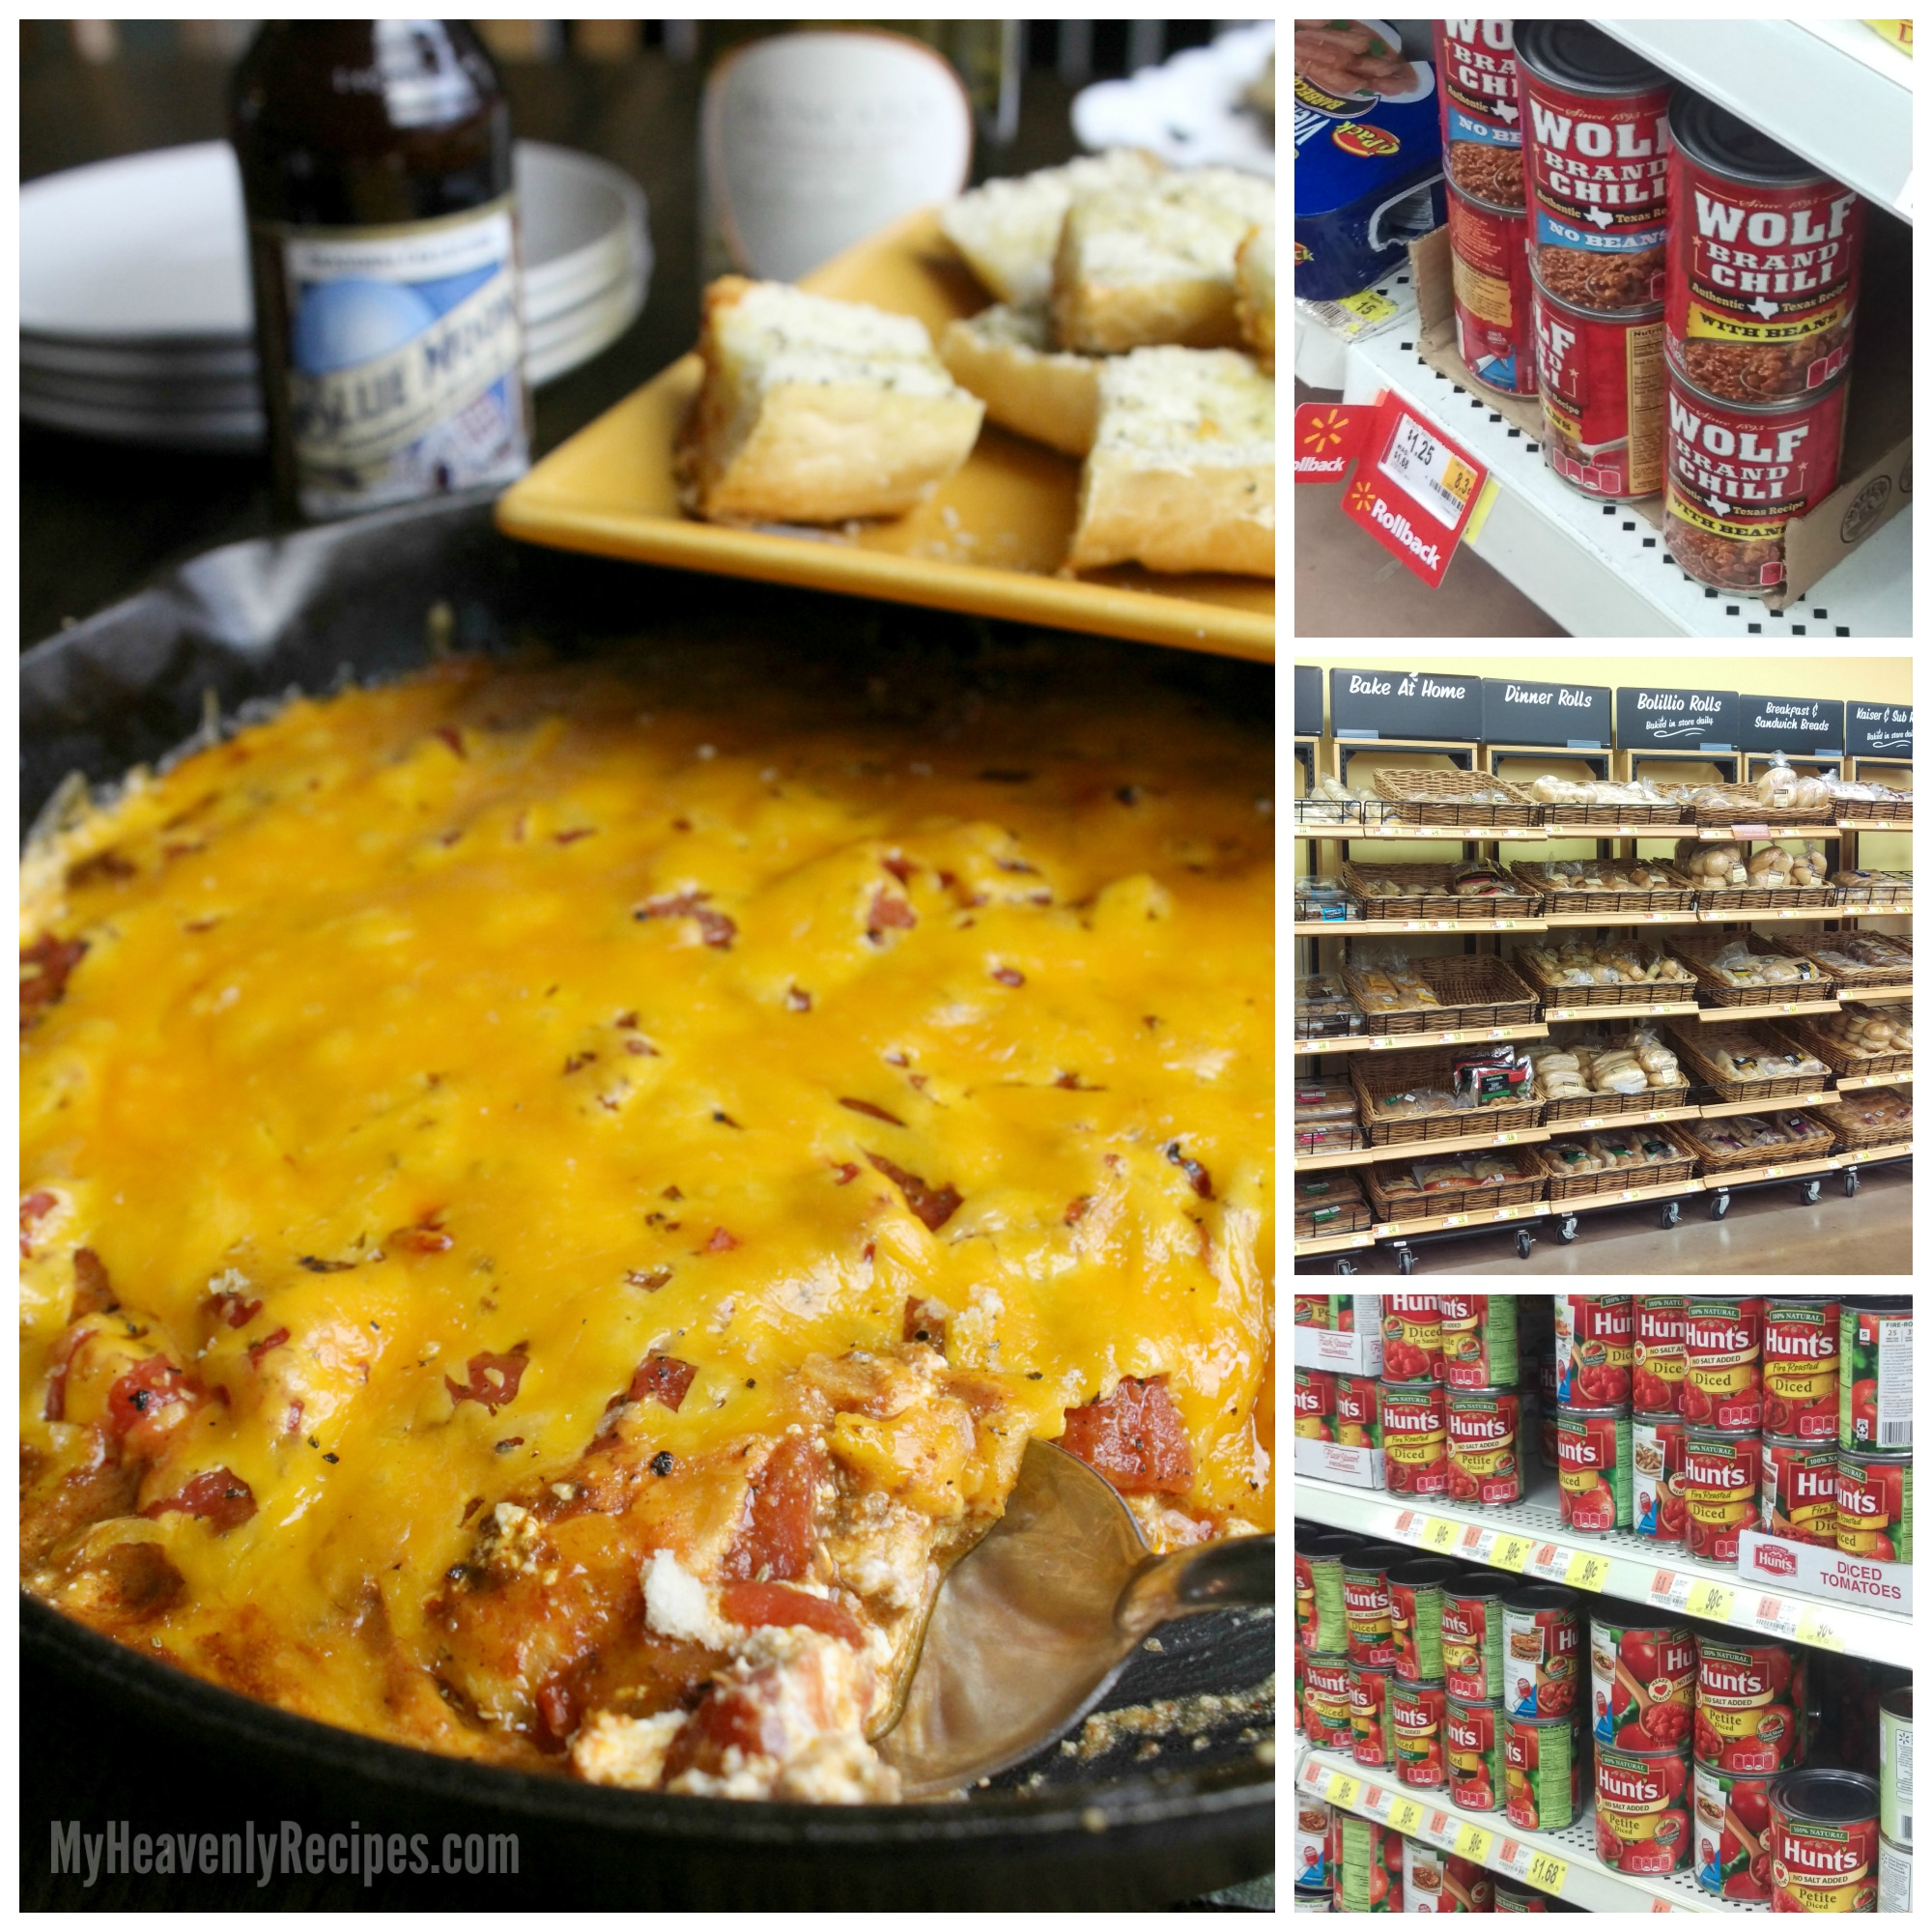 Chili Dip Ingredients at Walmart